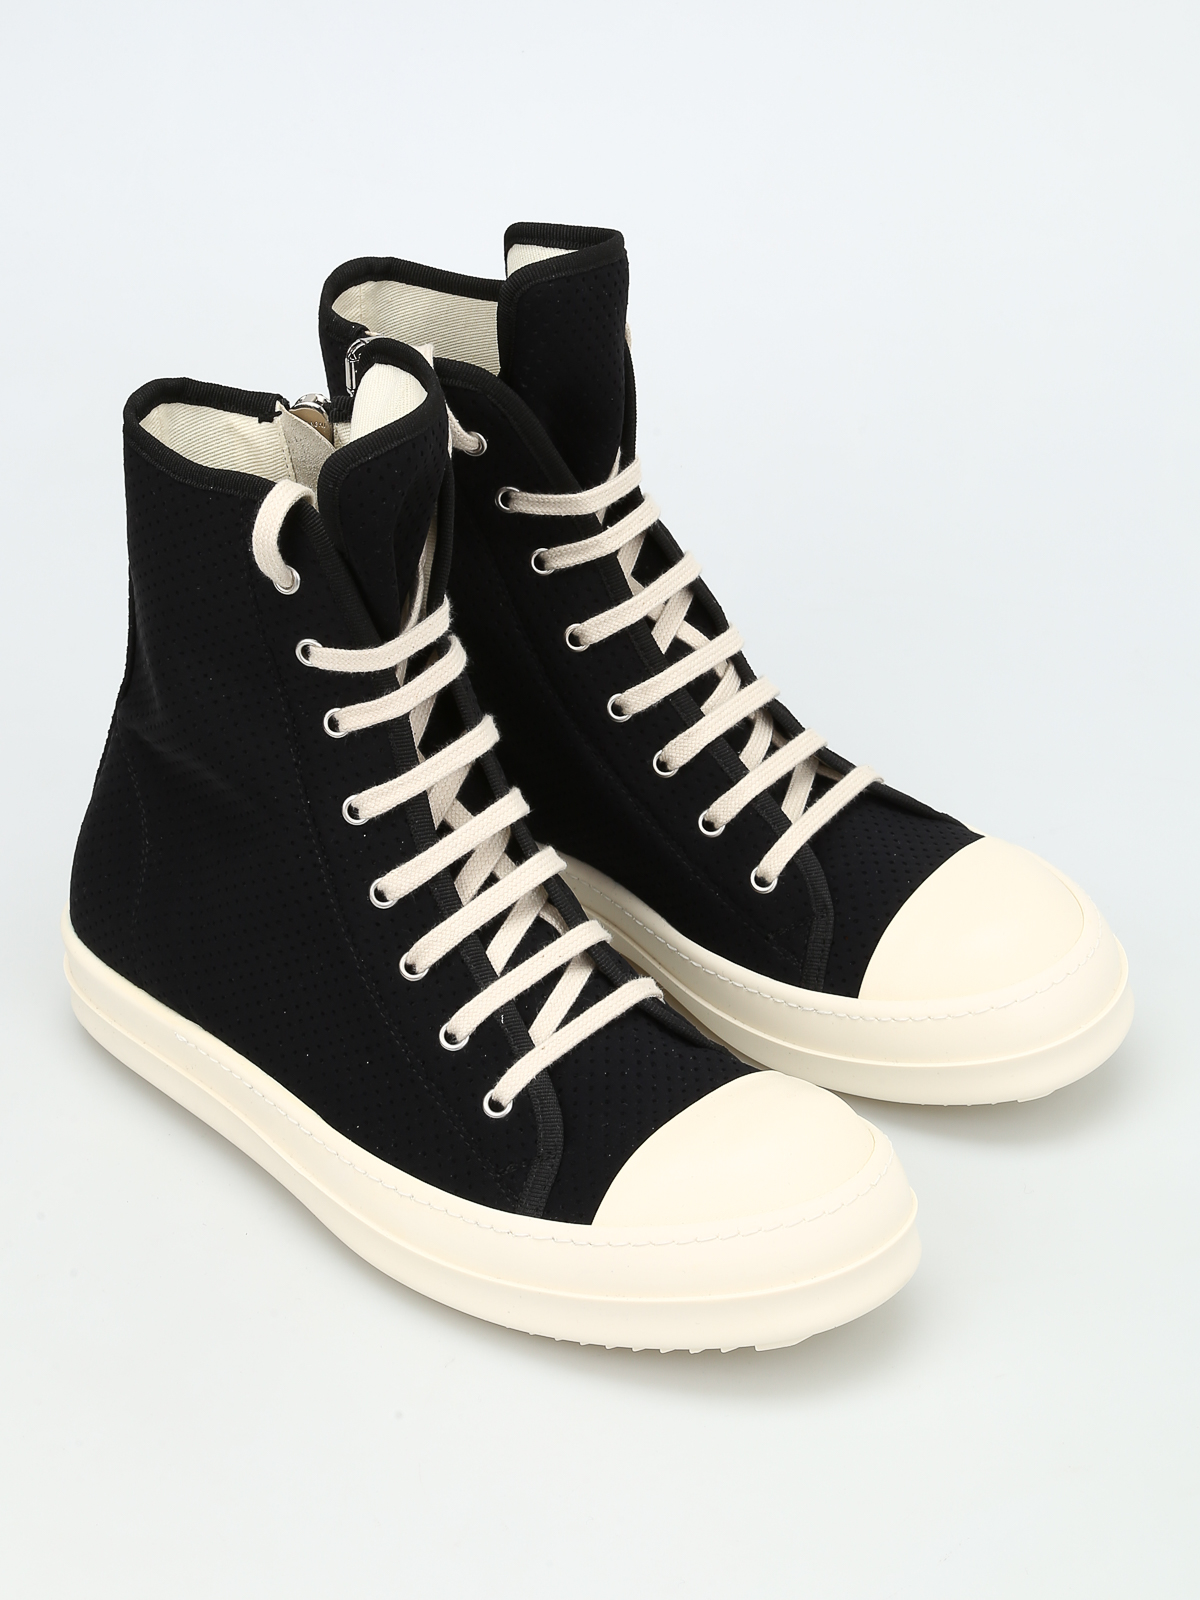 Rick Owens DRKSHDW canvas sneakers free shipping pay with visa Vfk7Mzj92